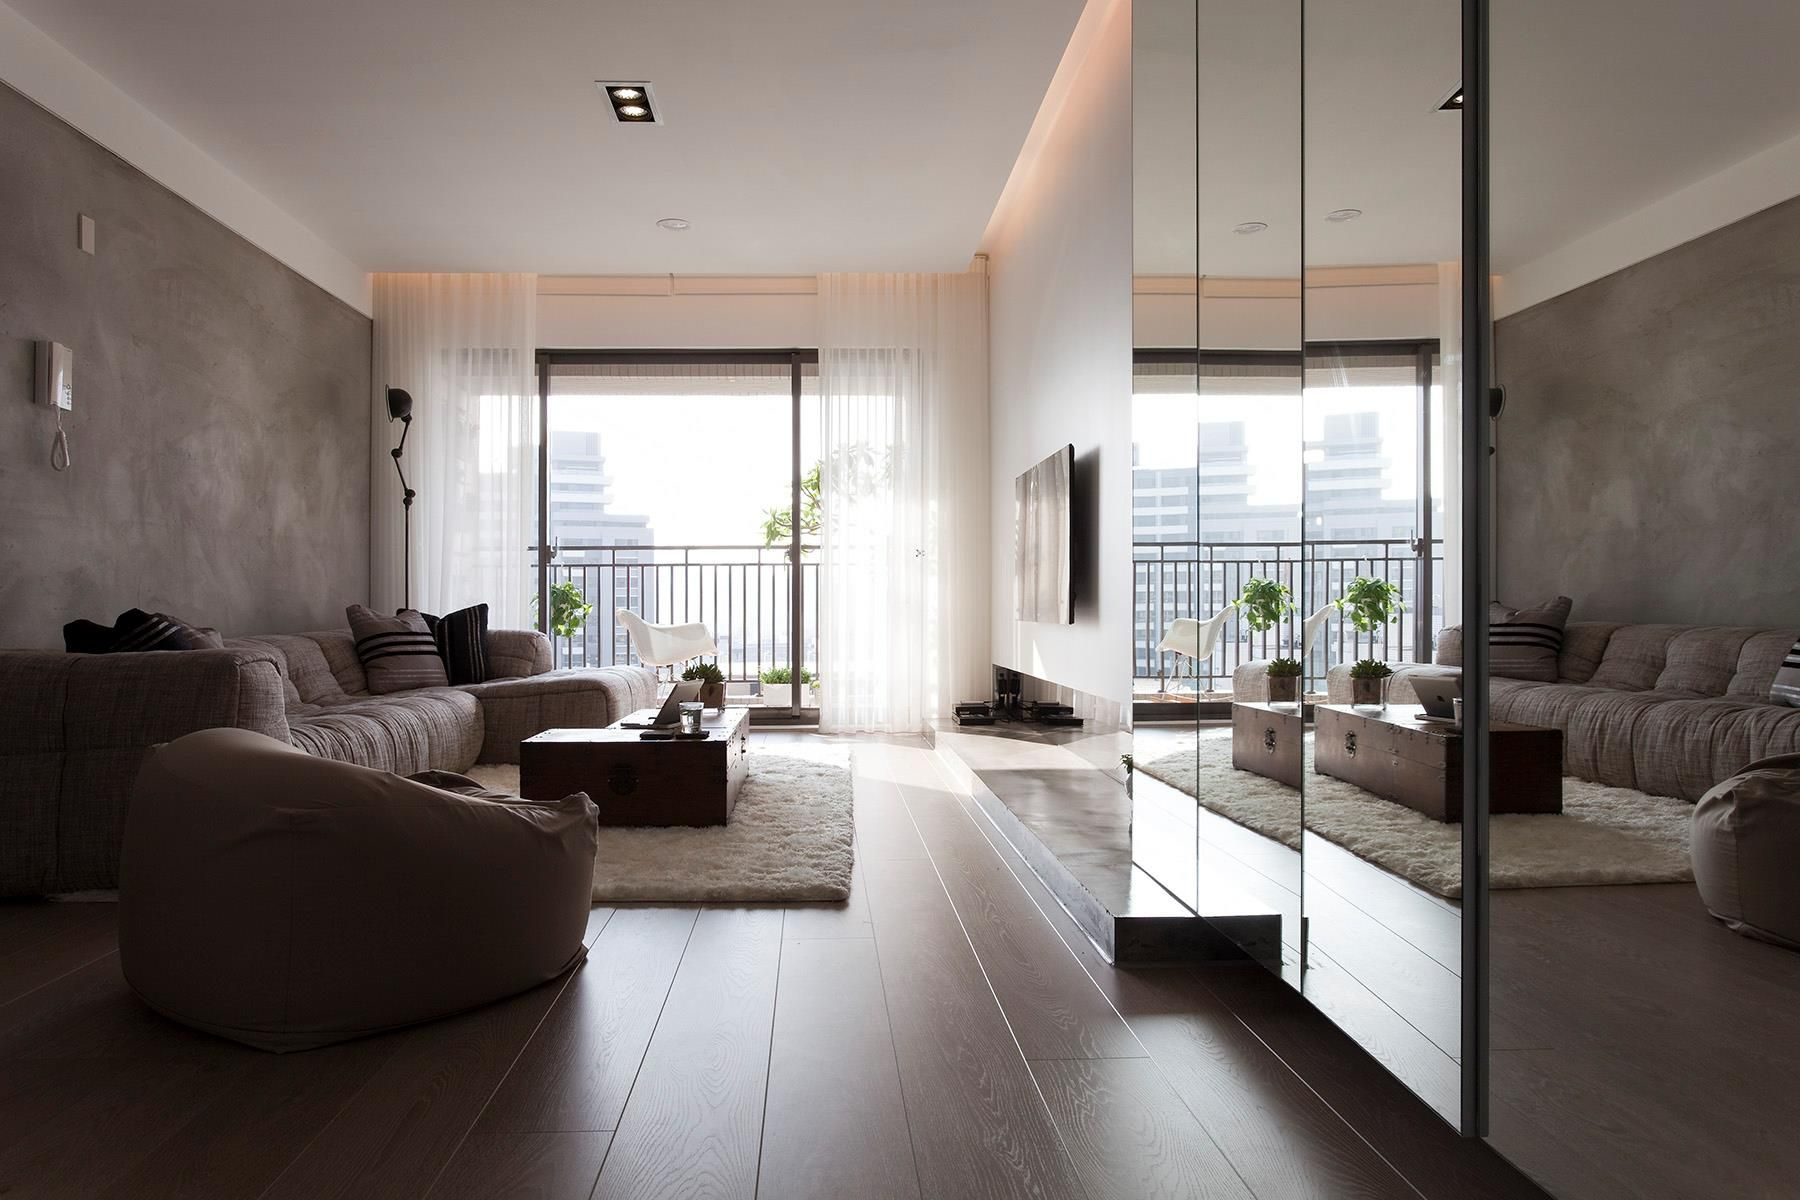 Well maintained apartments for comfortable living - Contemporary Apartment In Taiwan By Fertility Design